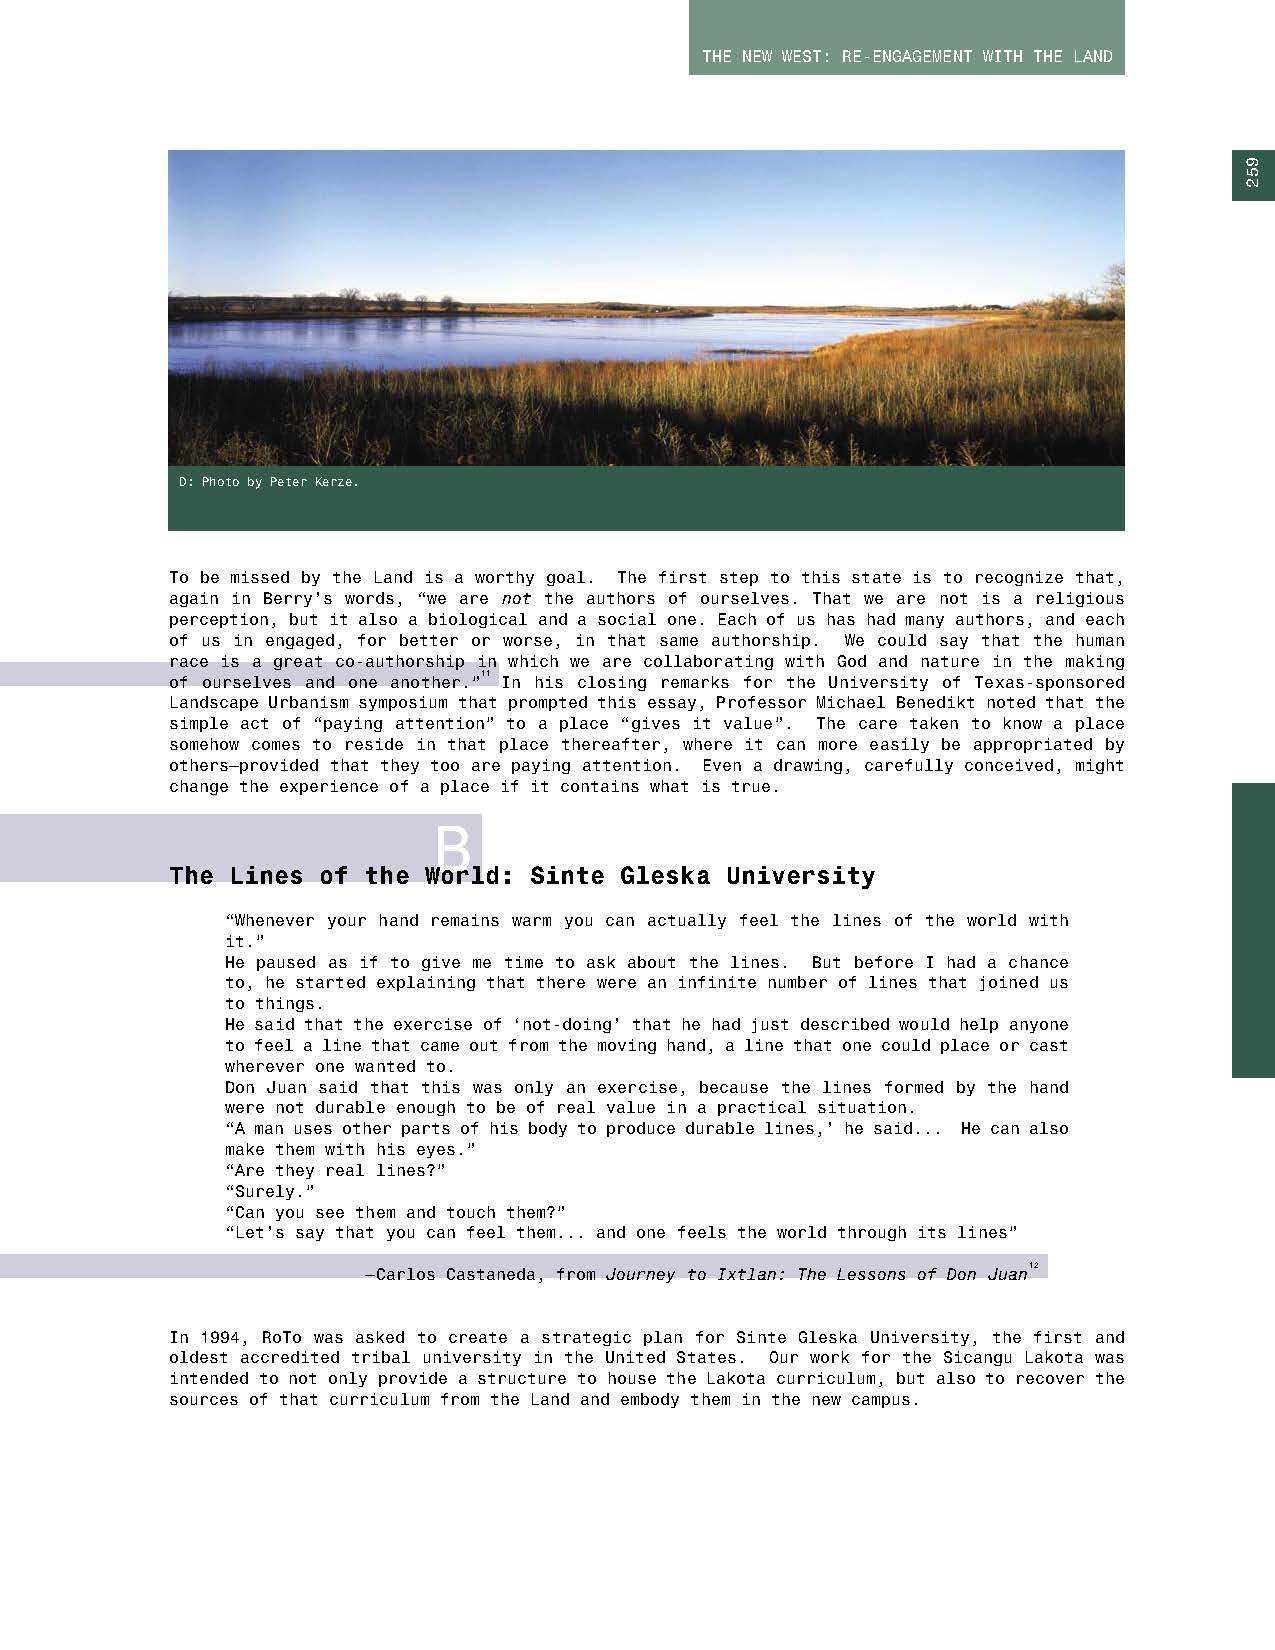 UT New West Land Co Article_Page_06.jpg